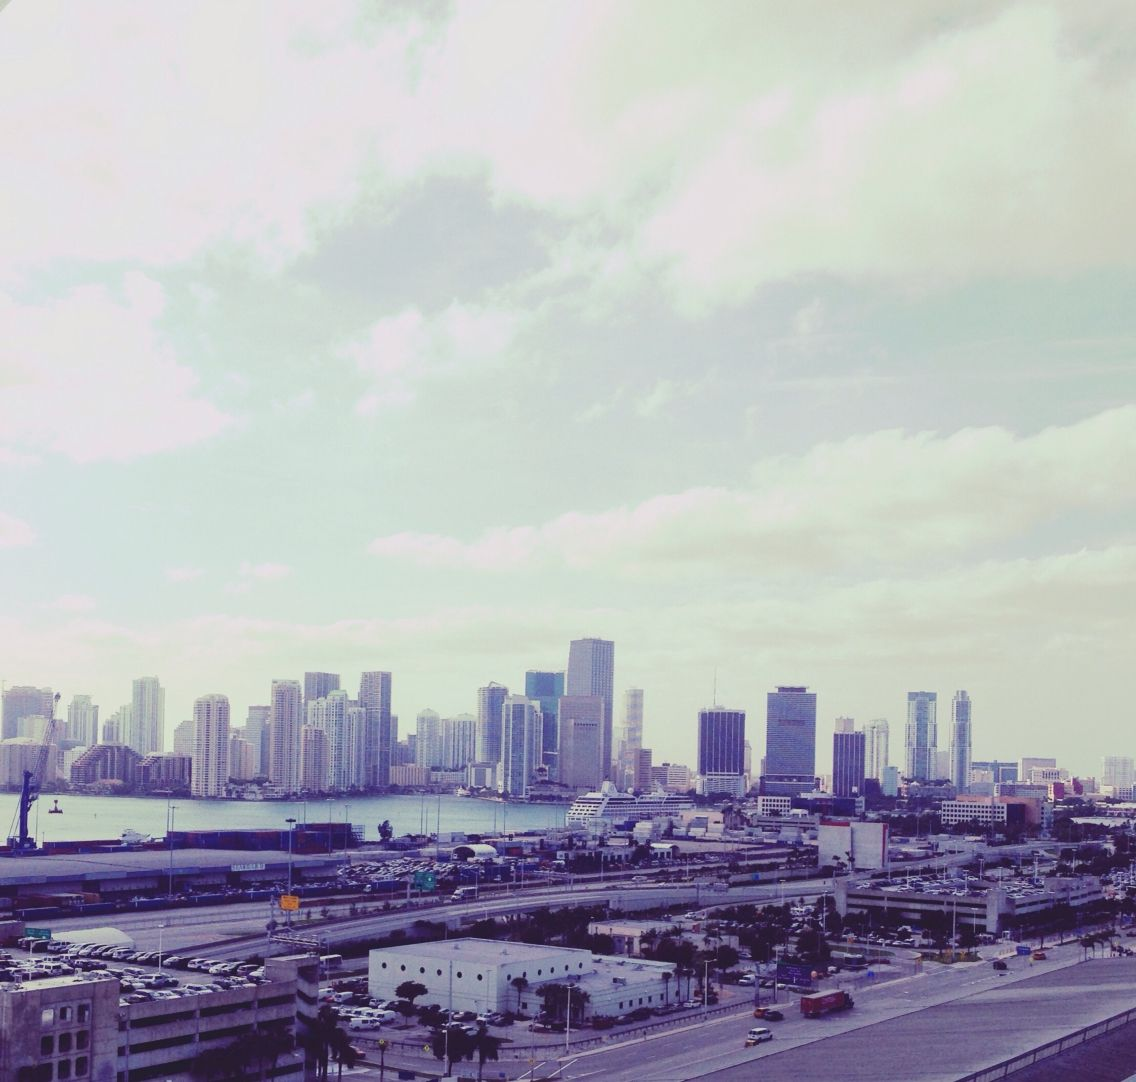 The view from my cruise in Miami